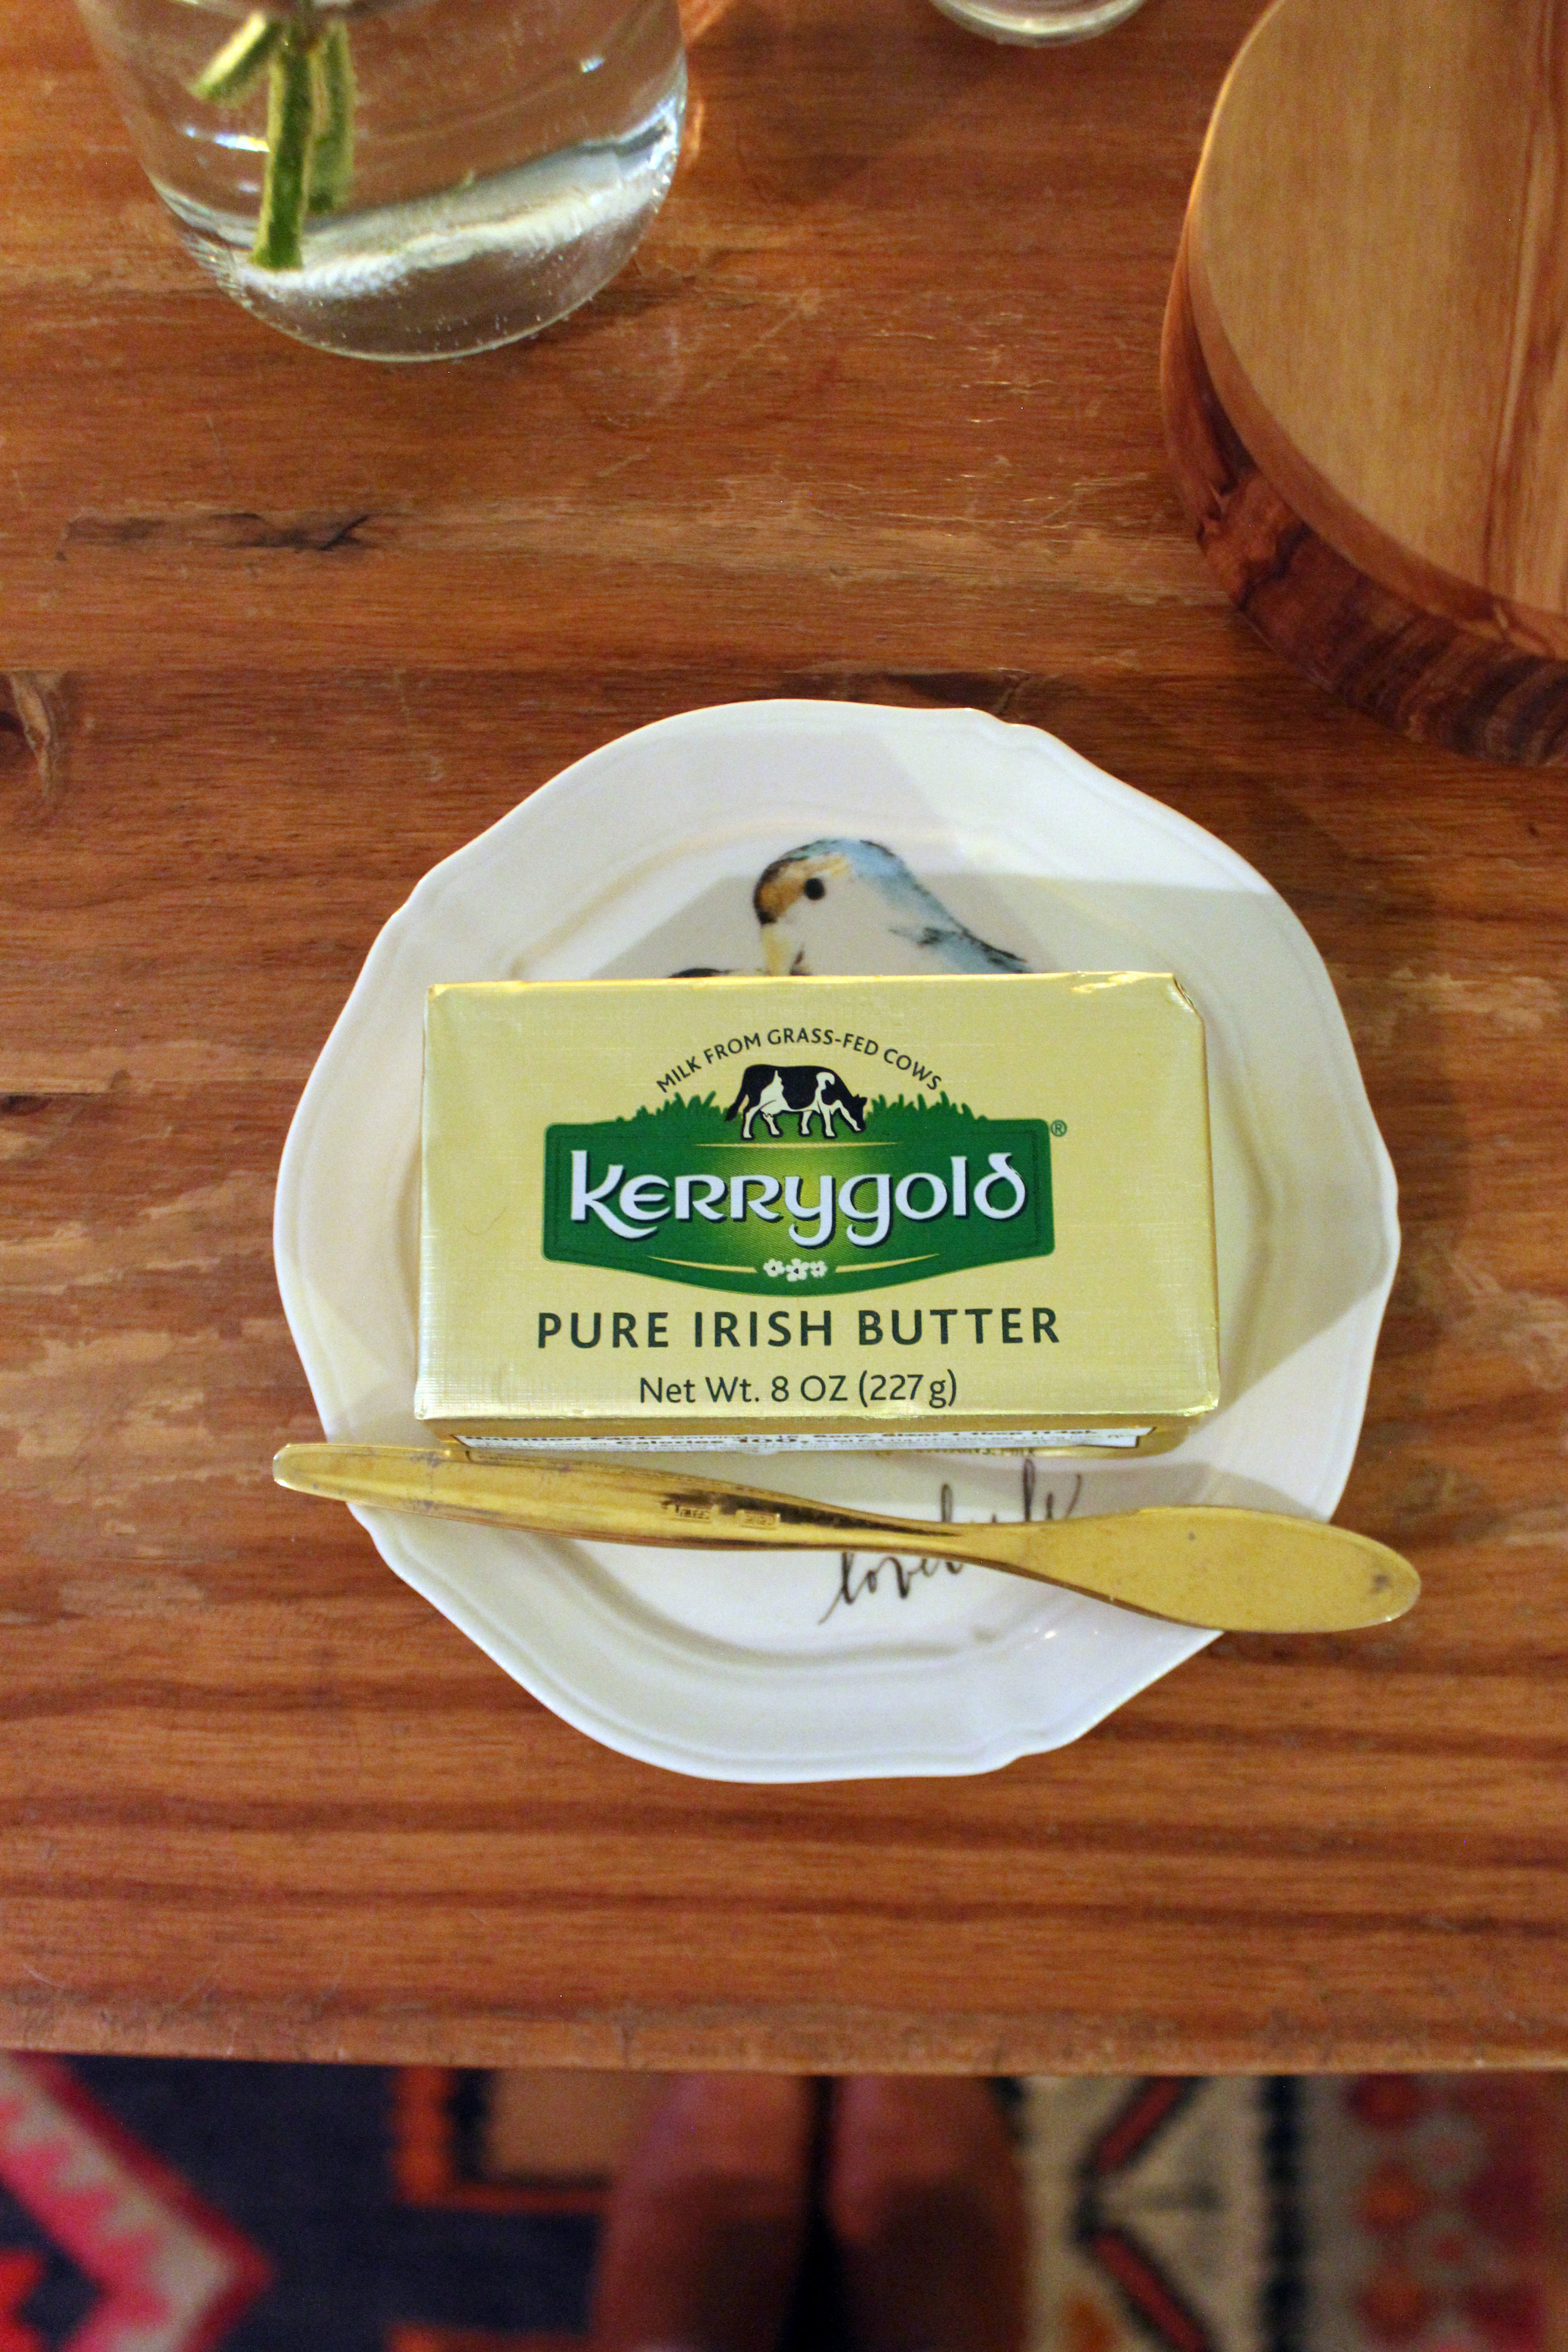 Kerrygold is a table staple!